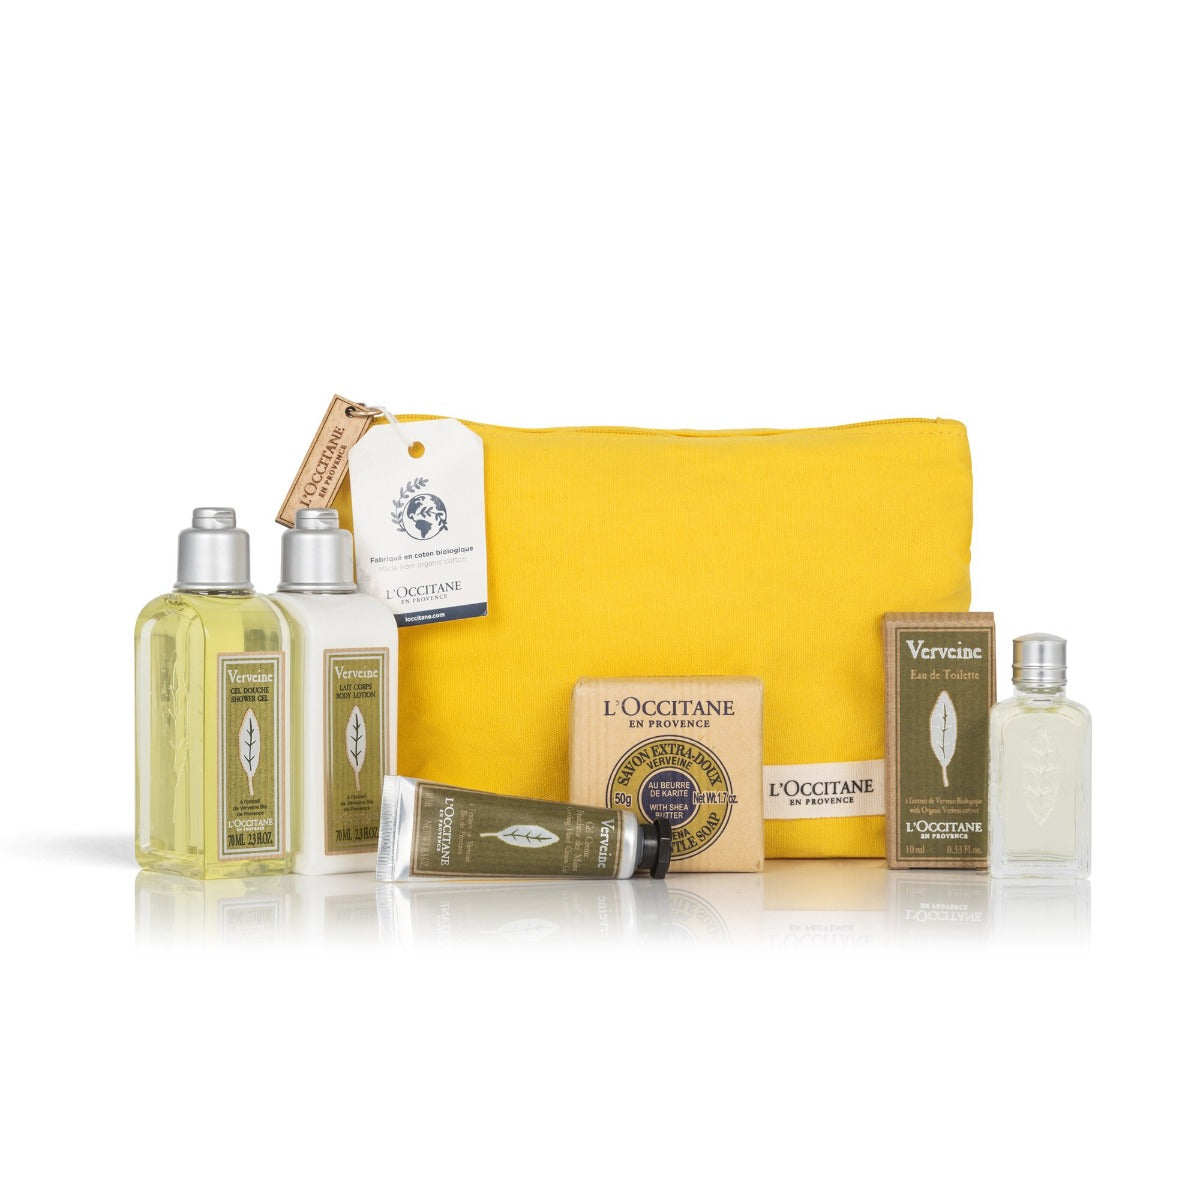 L'Occitane Verbena Discovery Collection